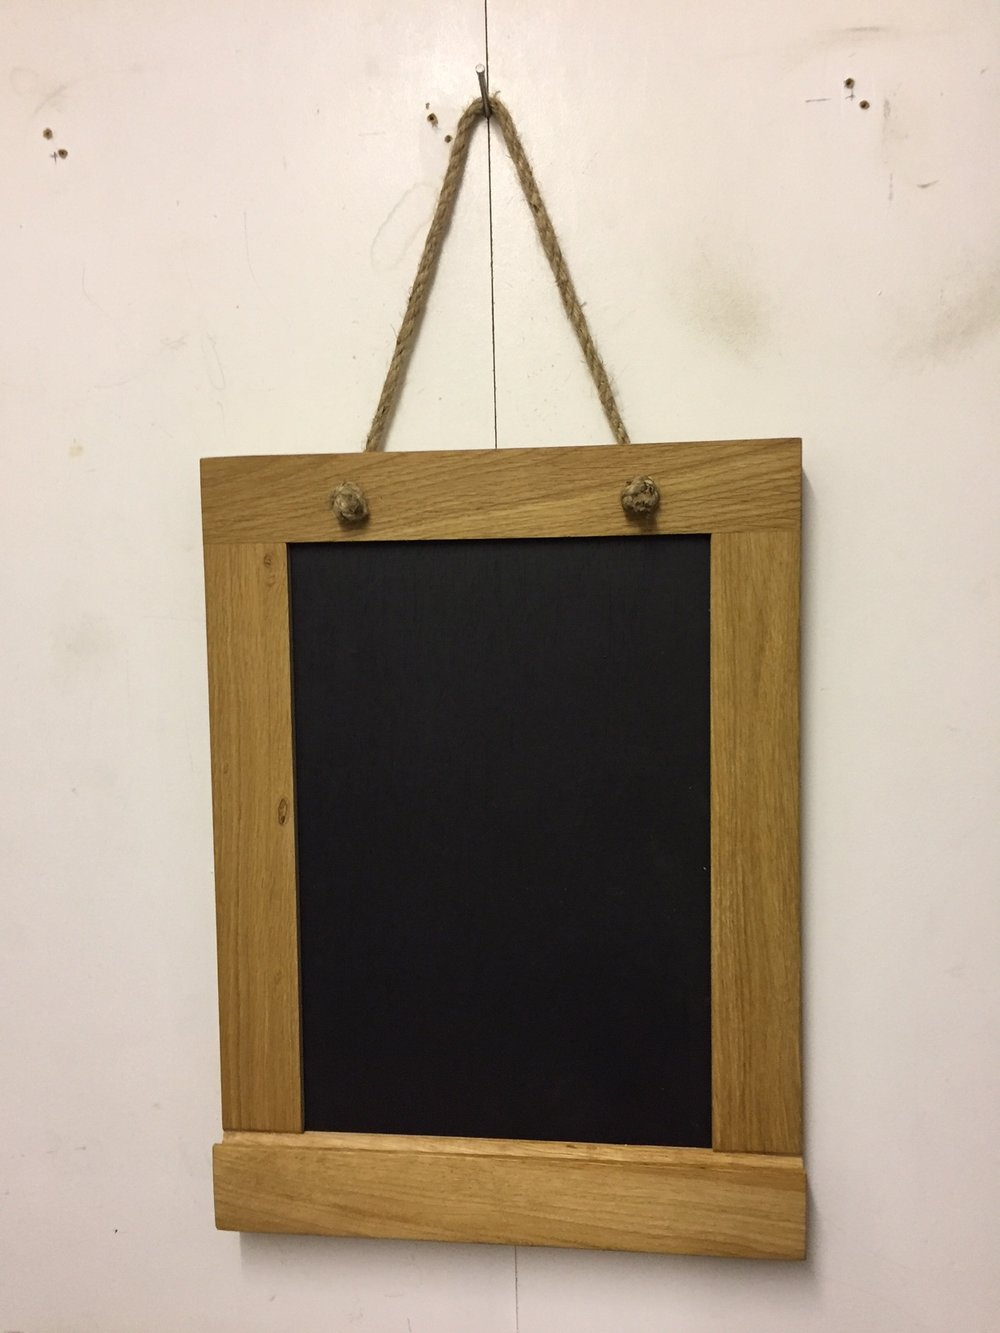 Oak framed chalk board, ideal for the kitchen - shopping lists, notes ... maybe for the children (please empty the dishwasher?!)